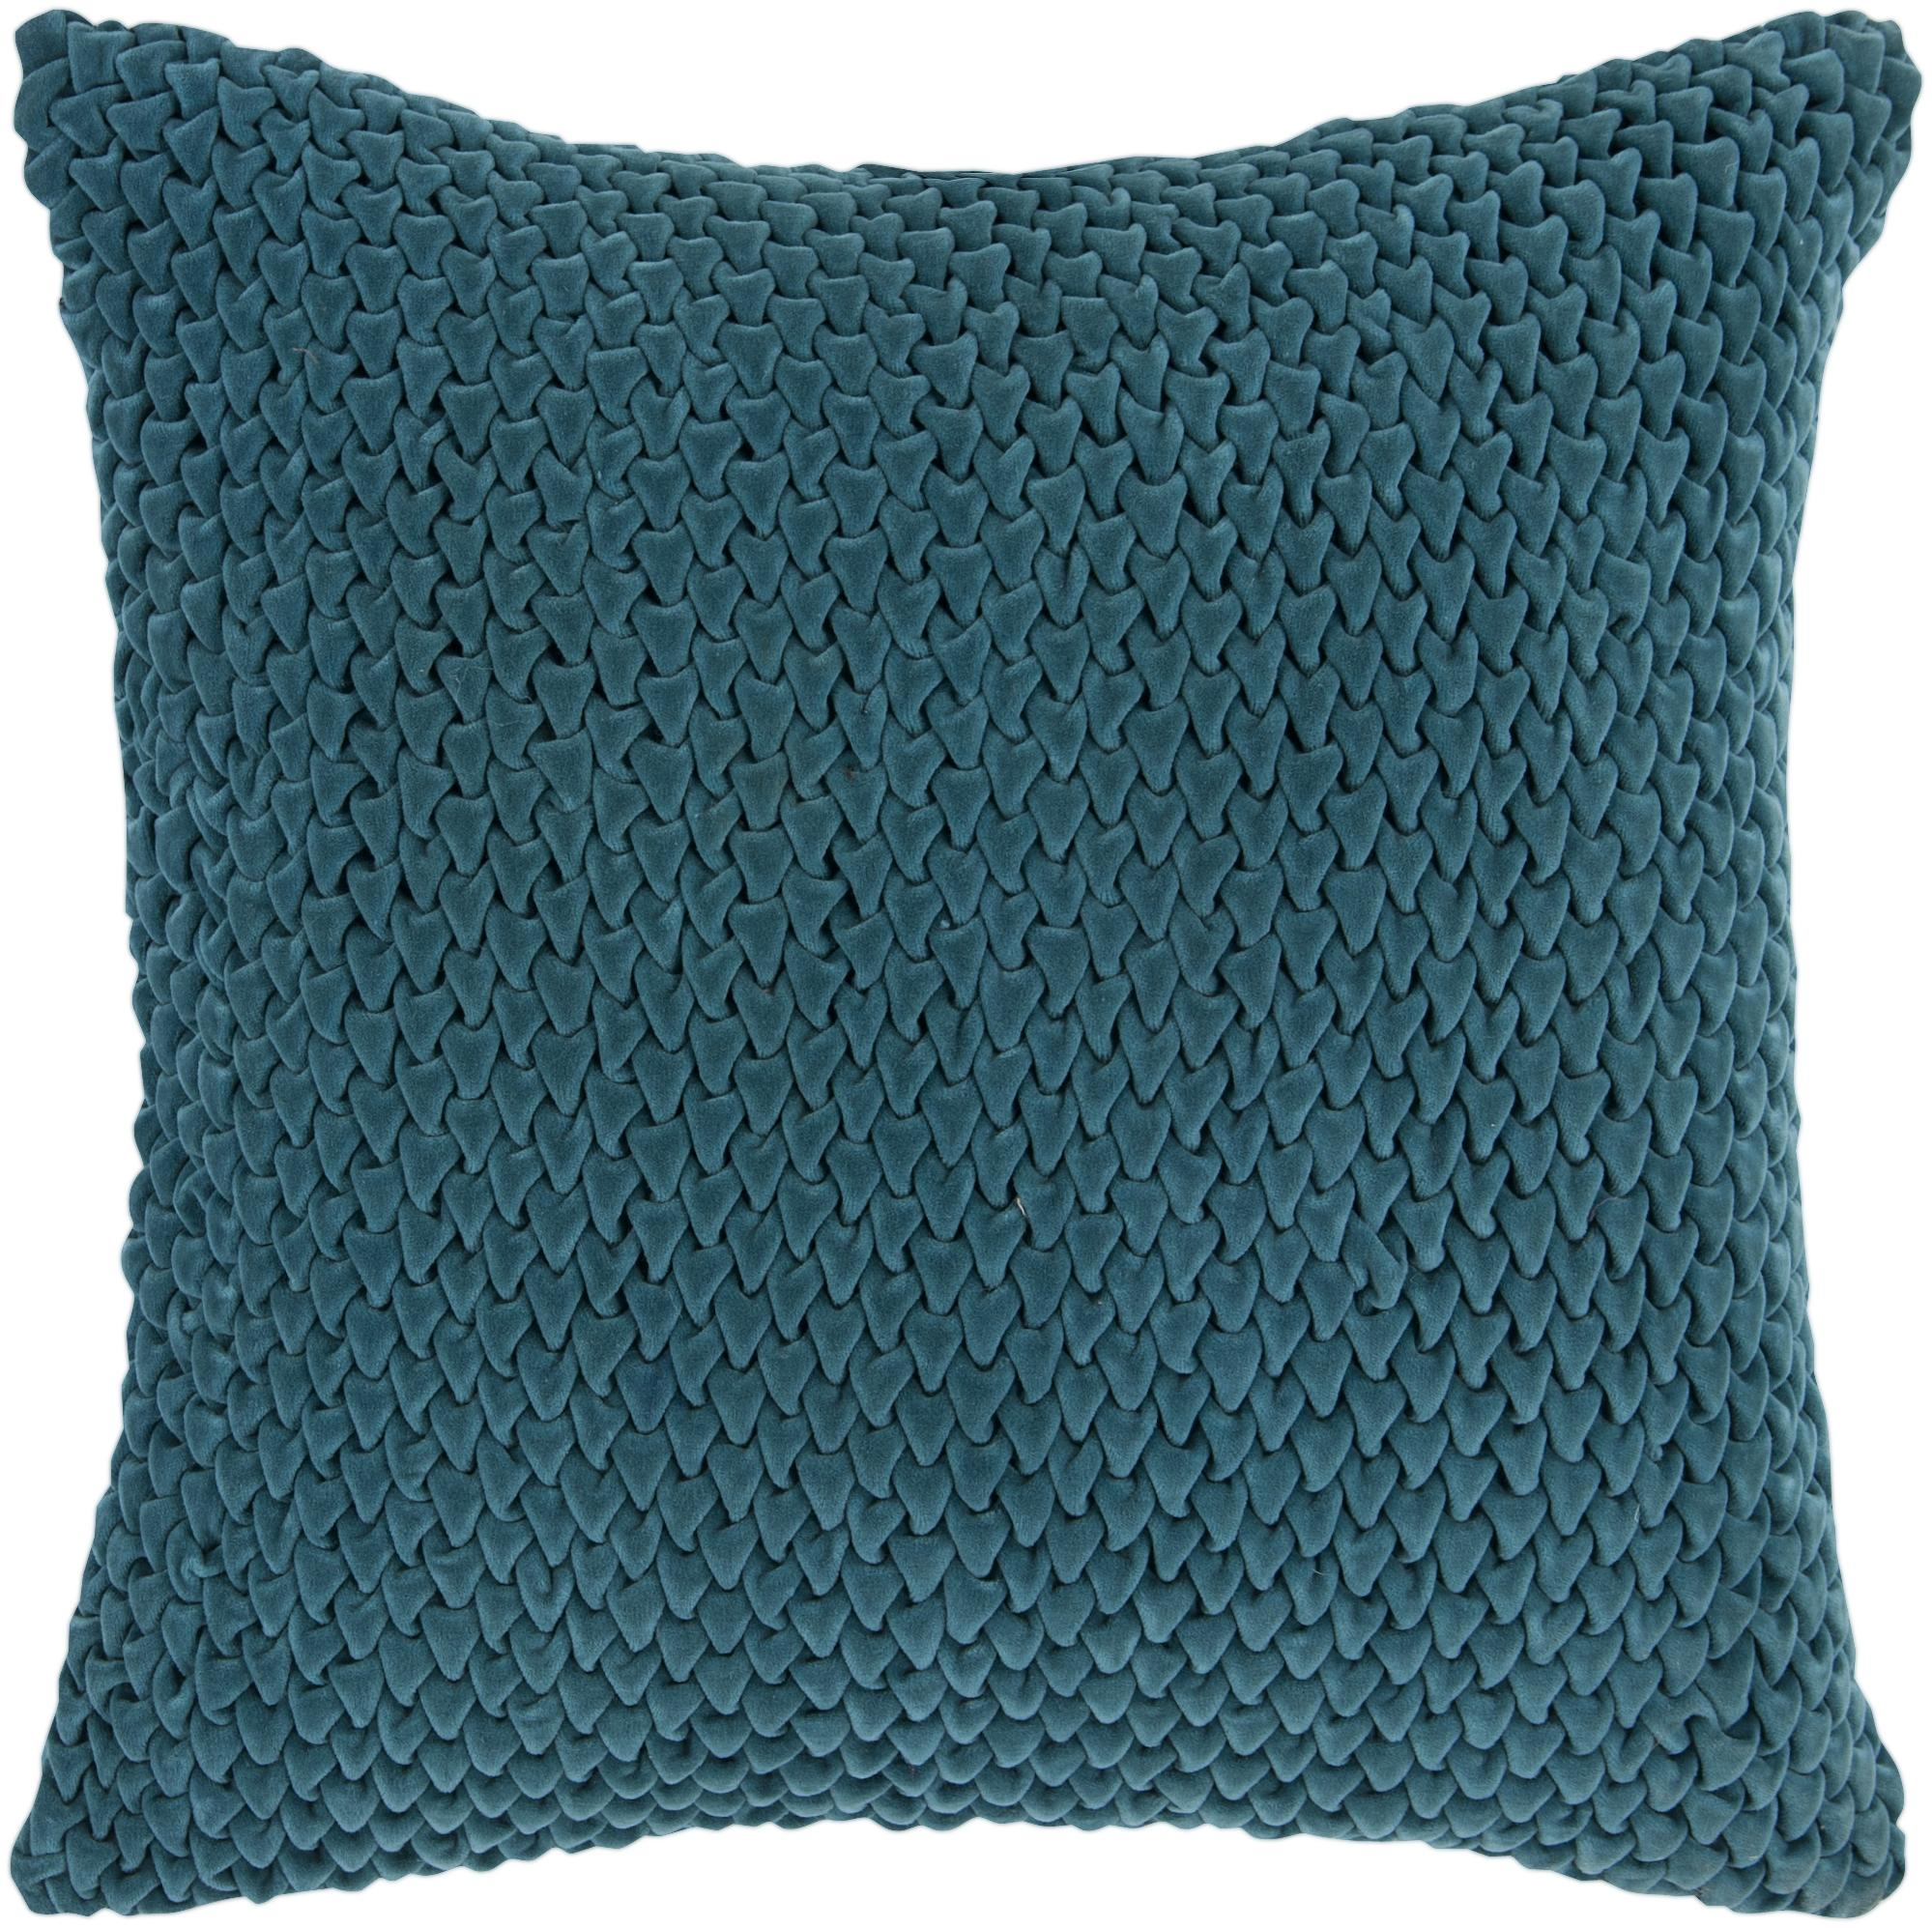 "Surya Pillows 18"" x 18"" Pillow - Item Number: P0275-1818P"